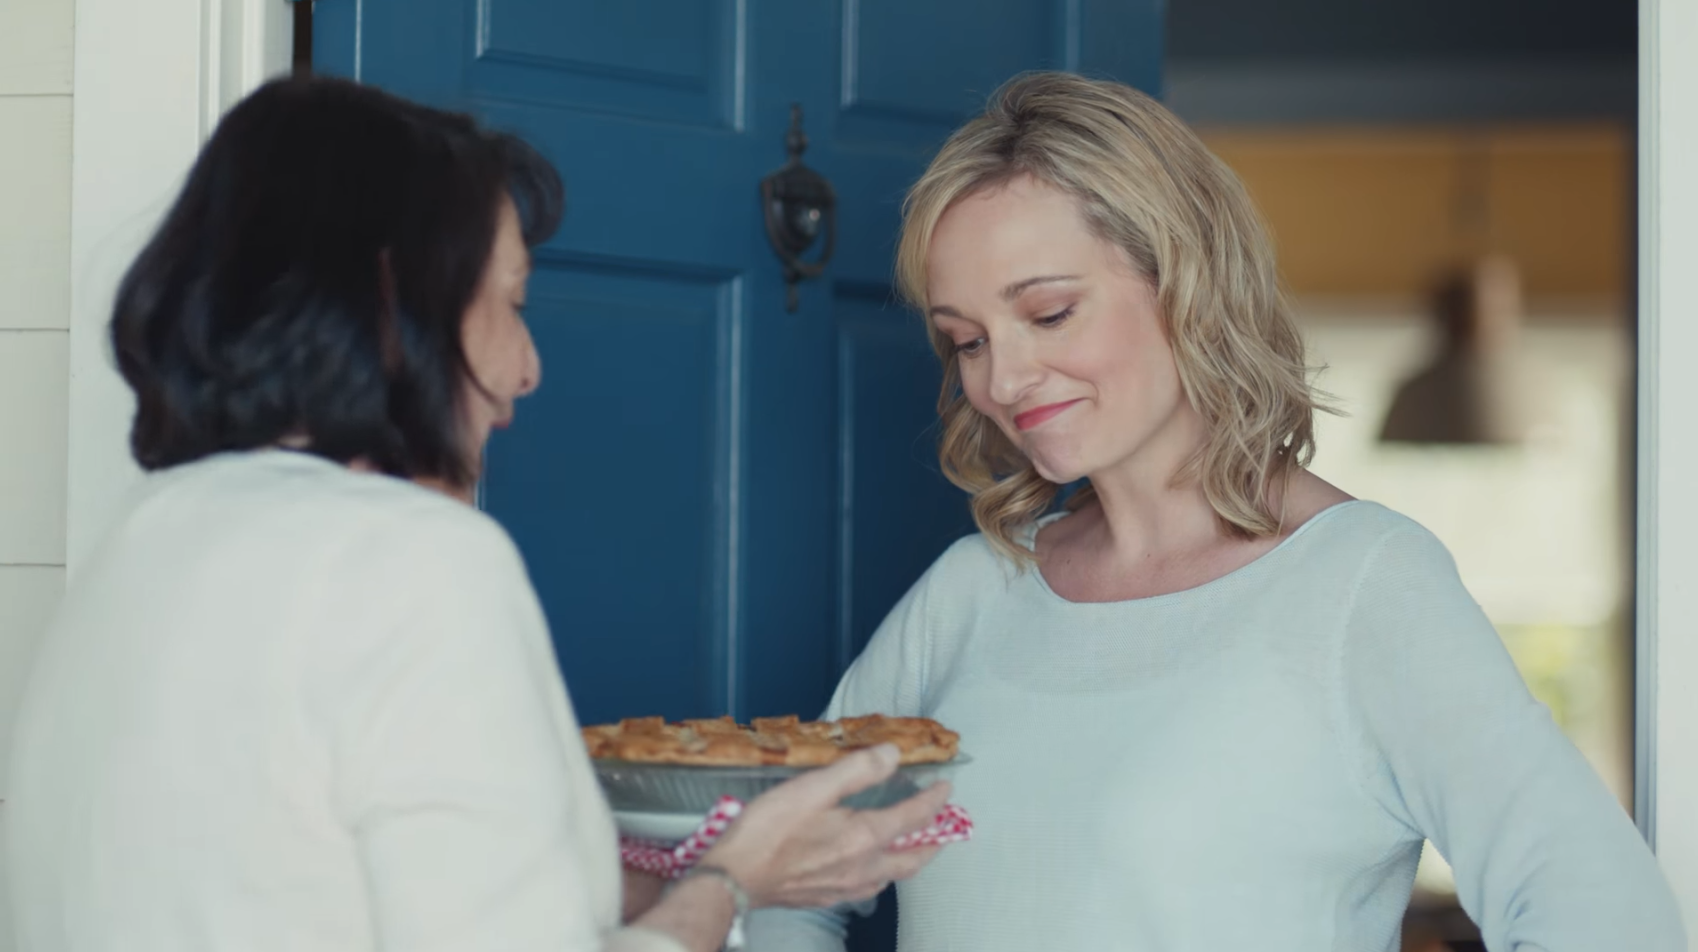 Citi Commerical About Bringing Pie